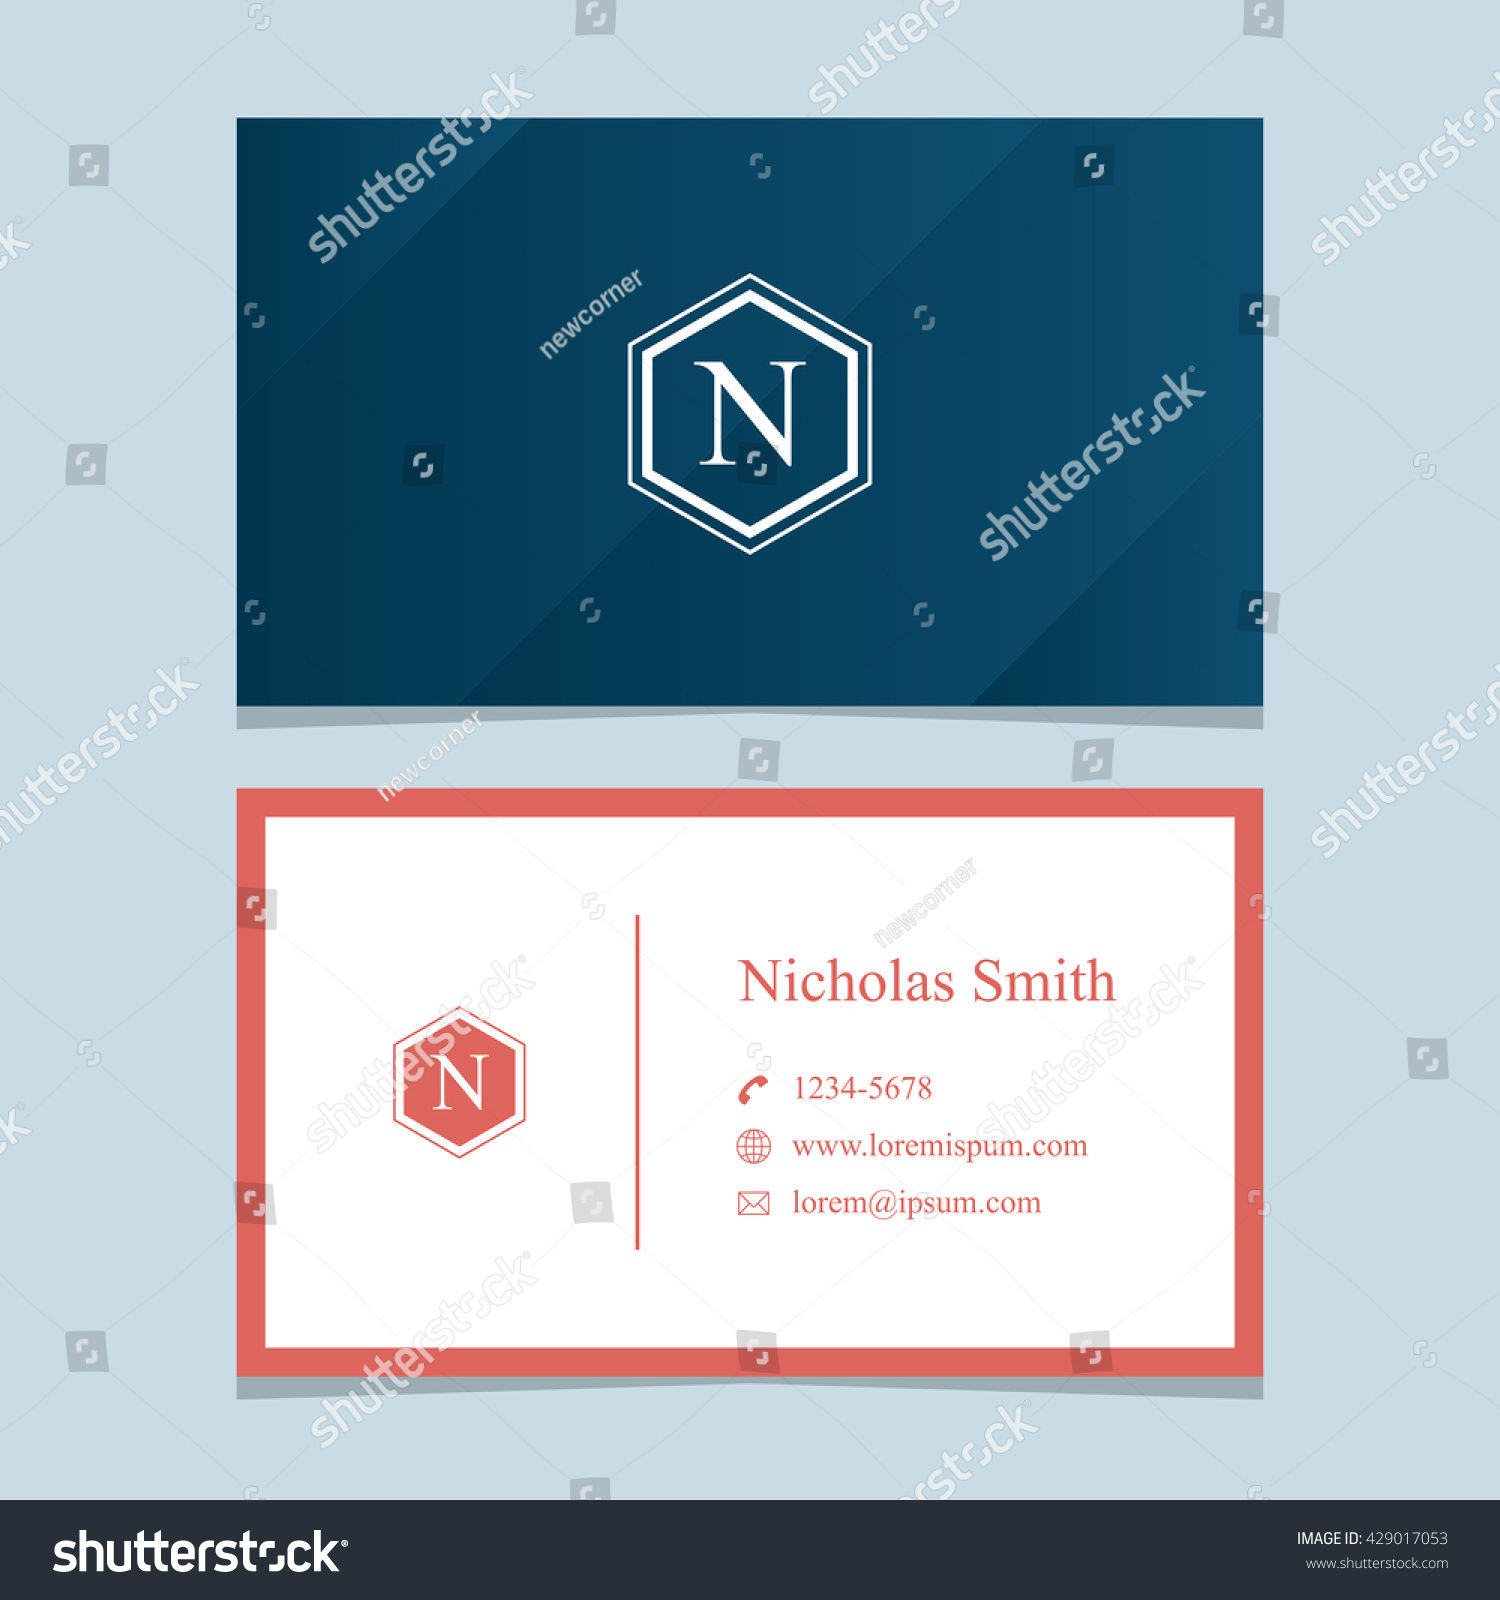 Logo alphabet letter n business card stock vector hd royalty free logo alphabet letter n with business card template vector graphic design elements thecheapjerseys Gallery